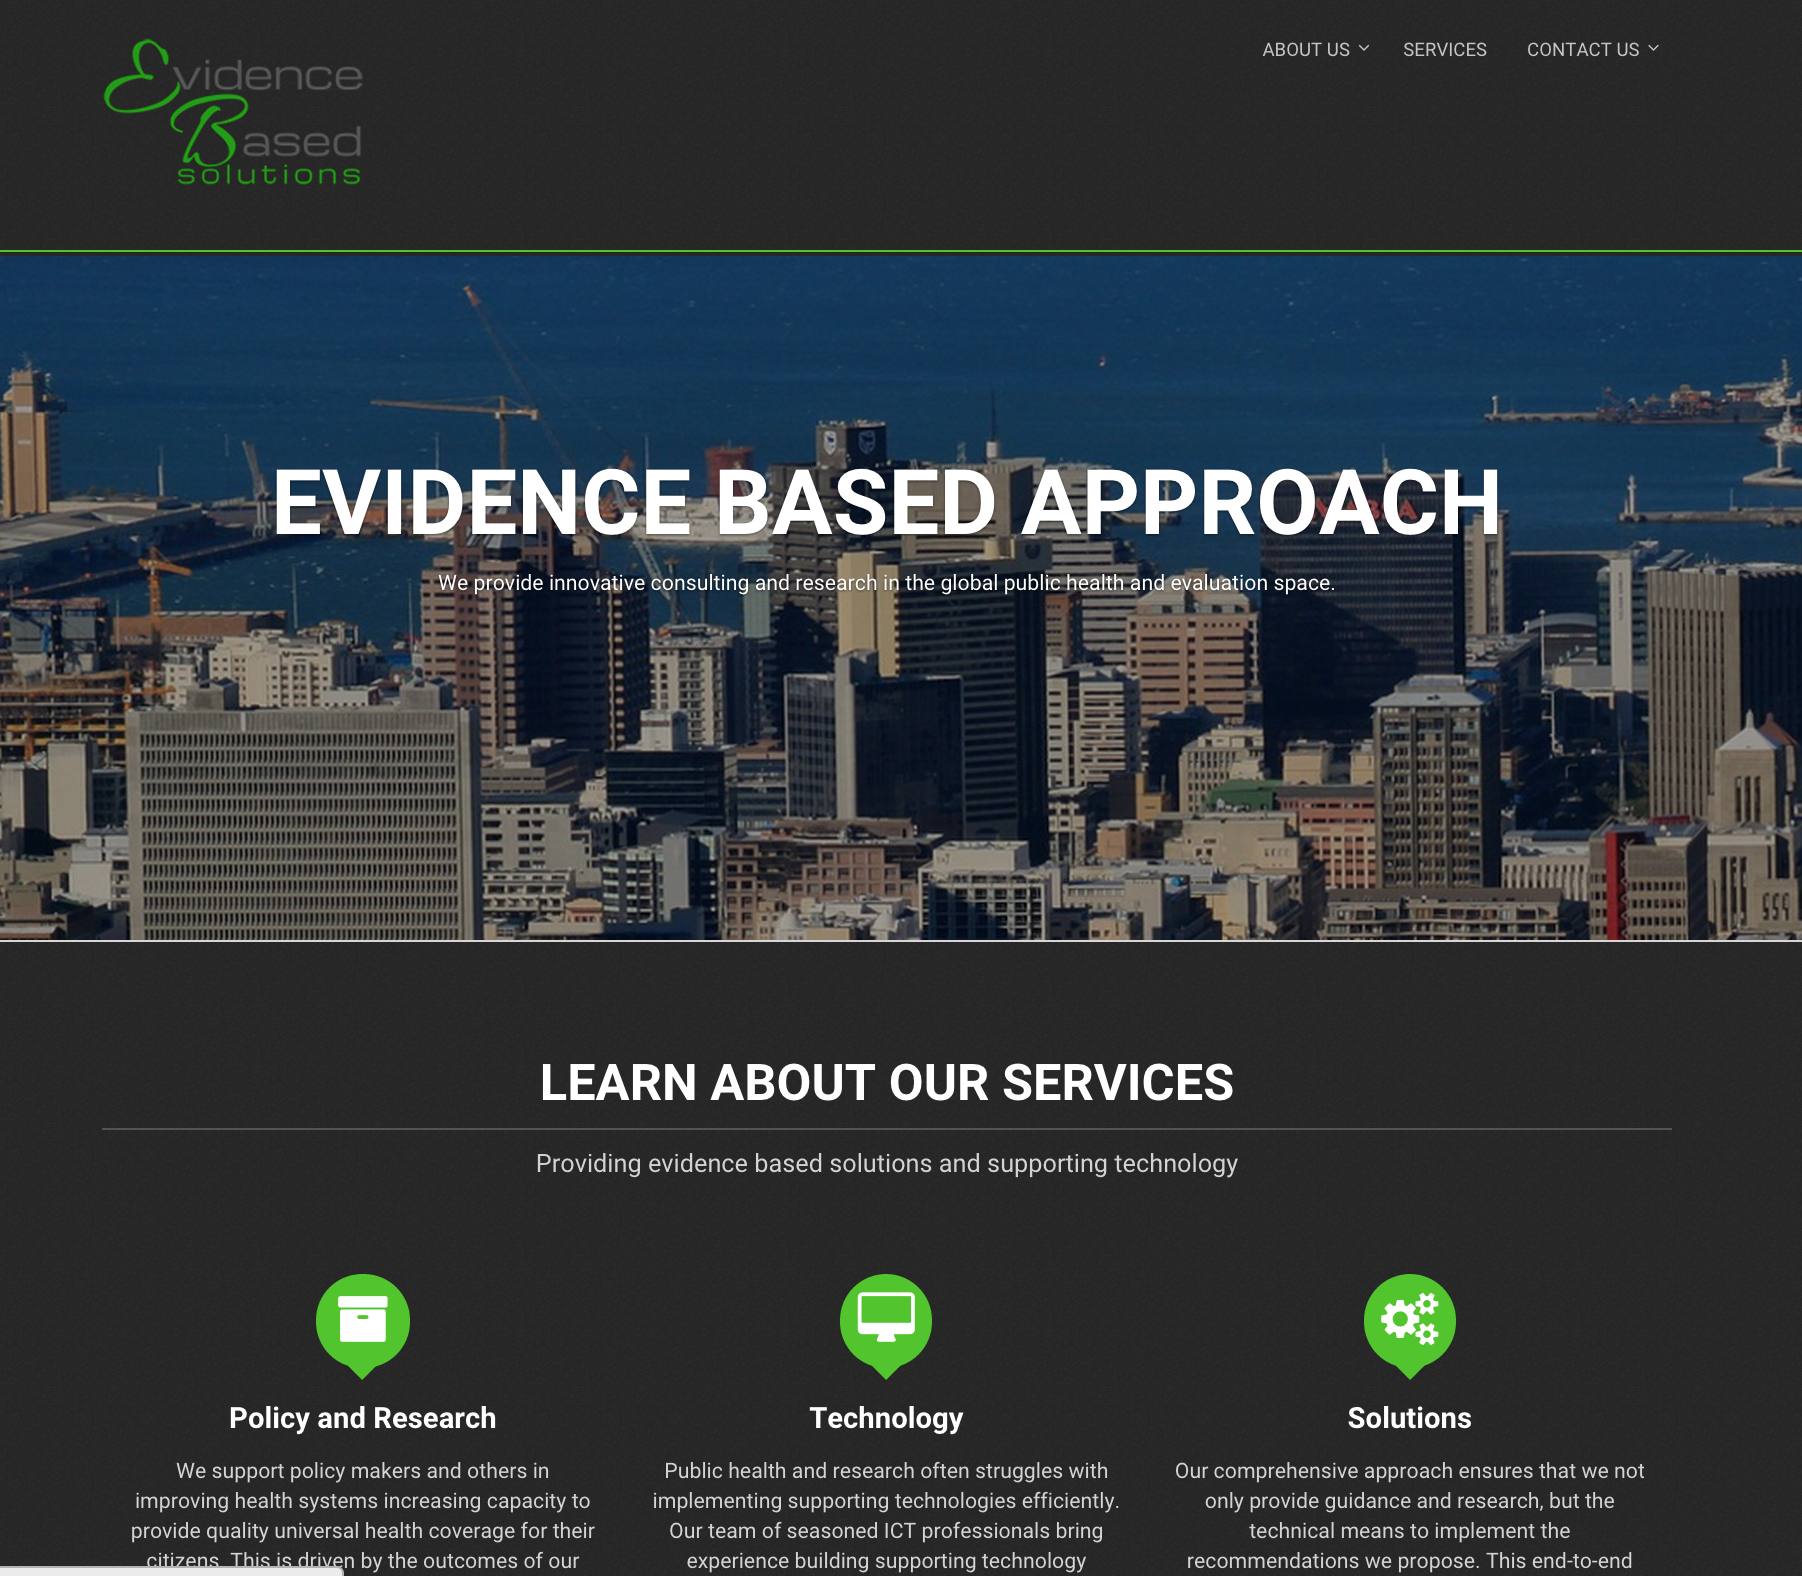 Evidence Based Solutions – Corporate Web Design